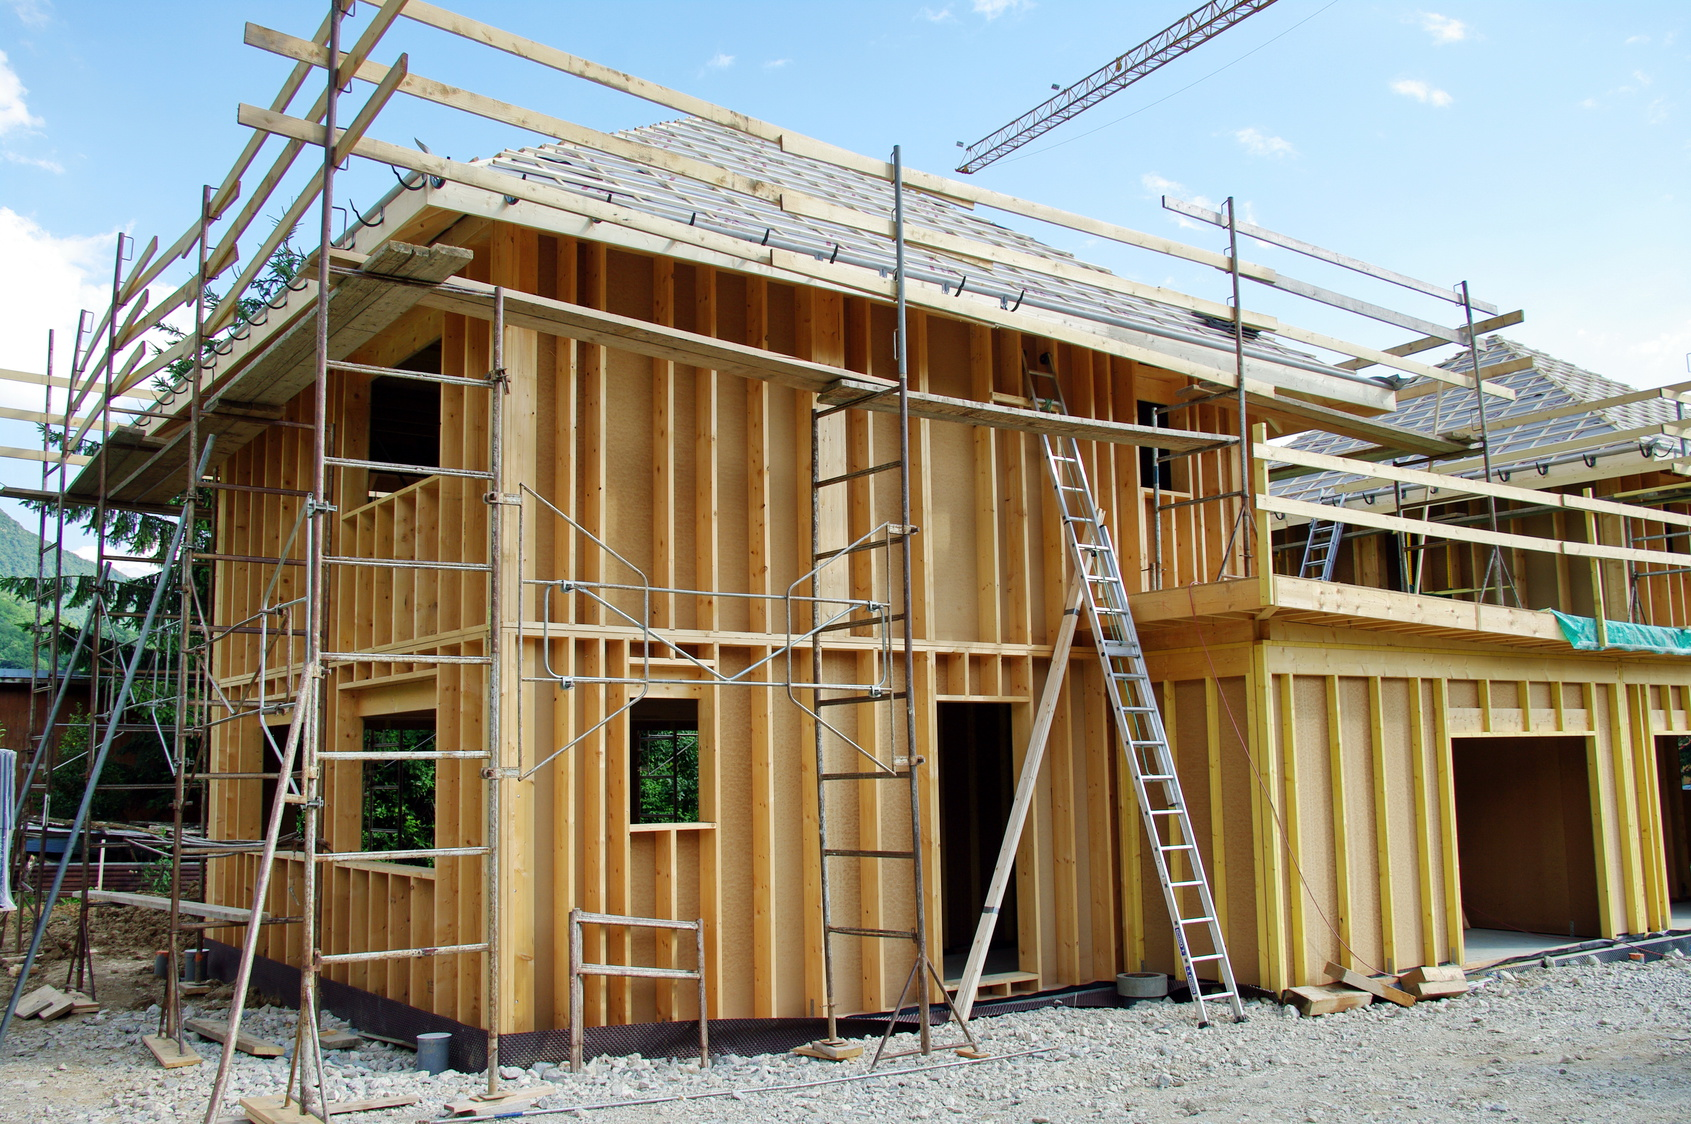 Les tapes de construction d une maison en kit for Maison construction